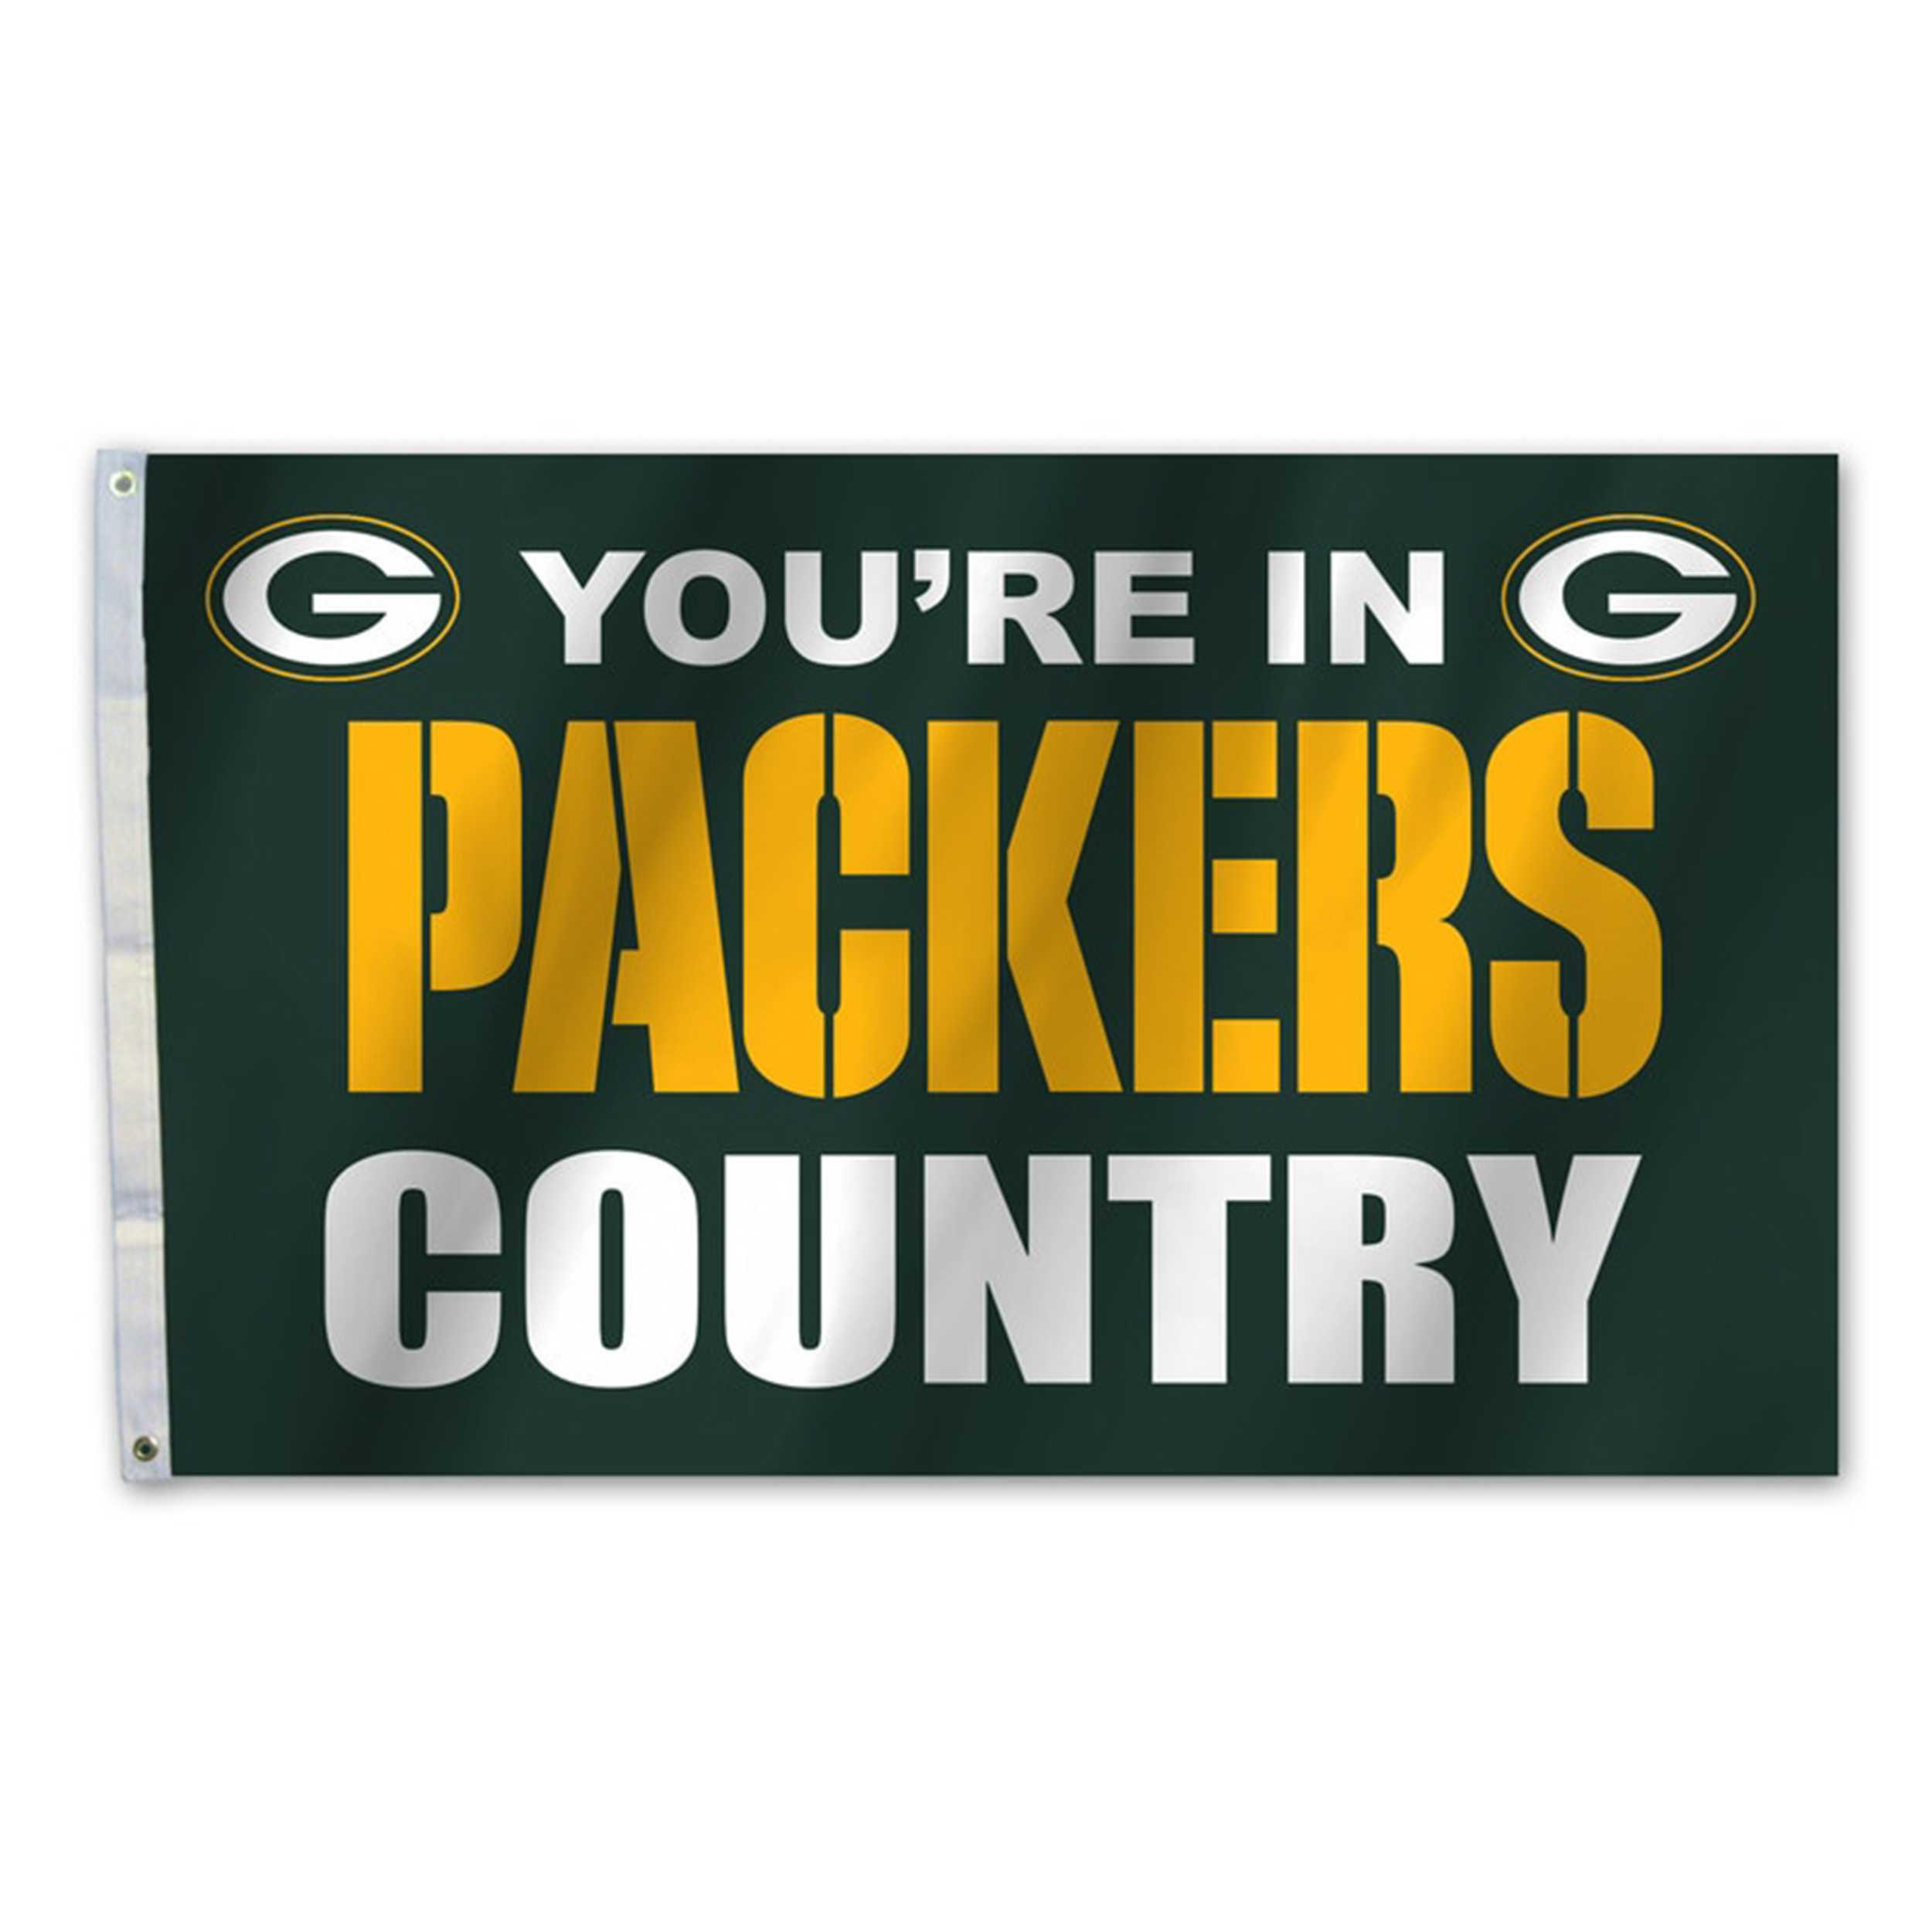 Country Flag-Green Bay Packers